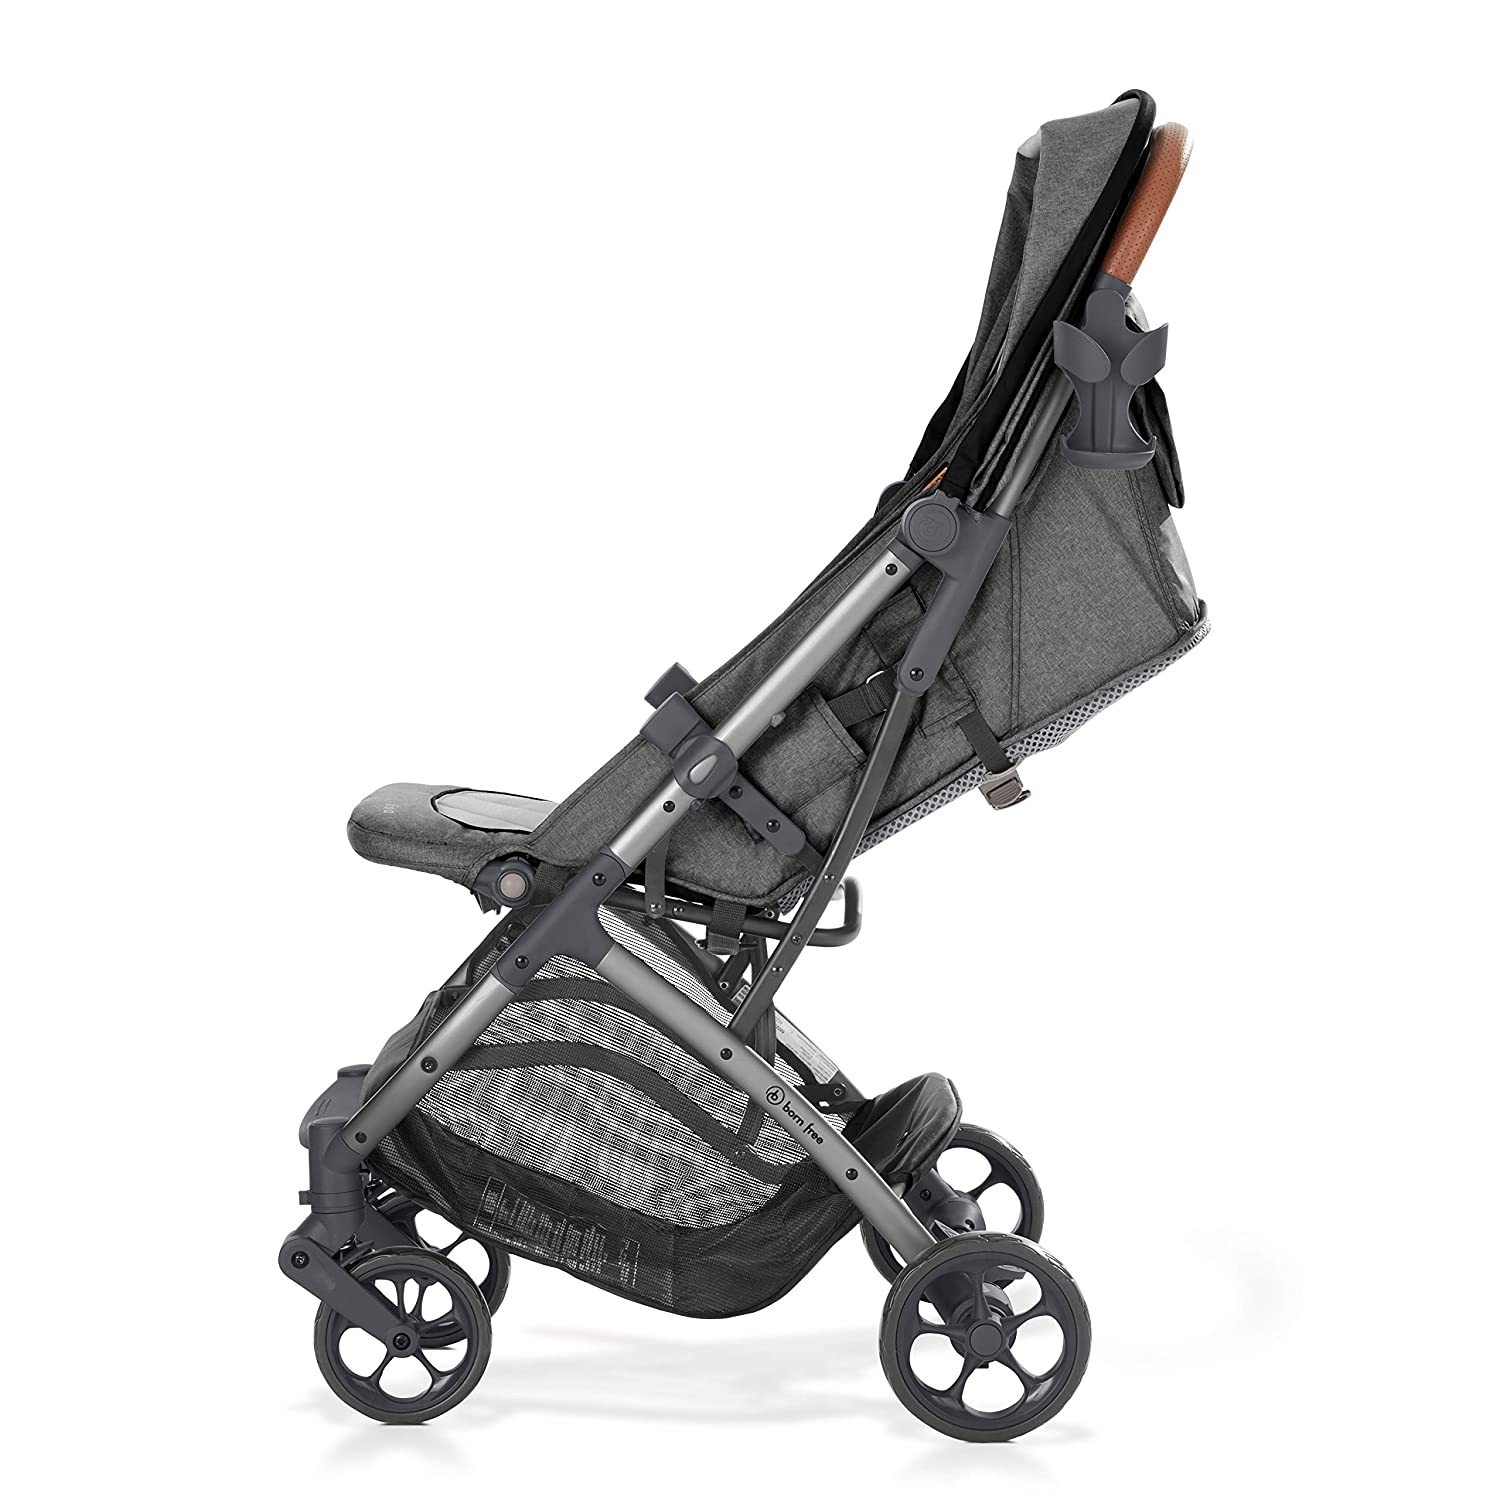 Free Amazon Promo Code 2020 for Compact Fold Stroller